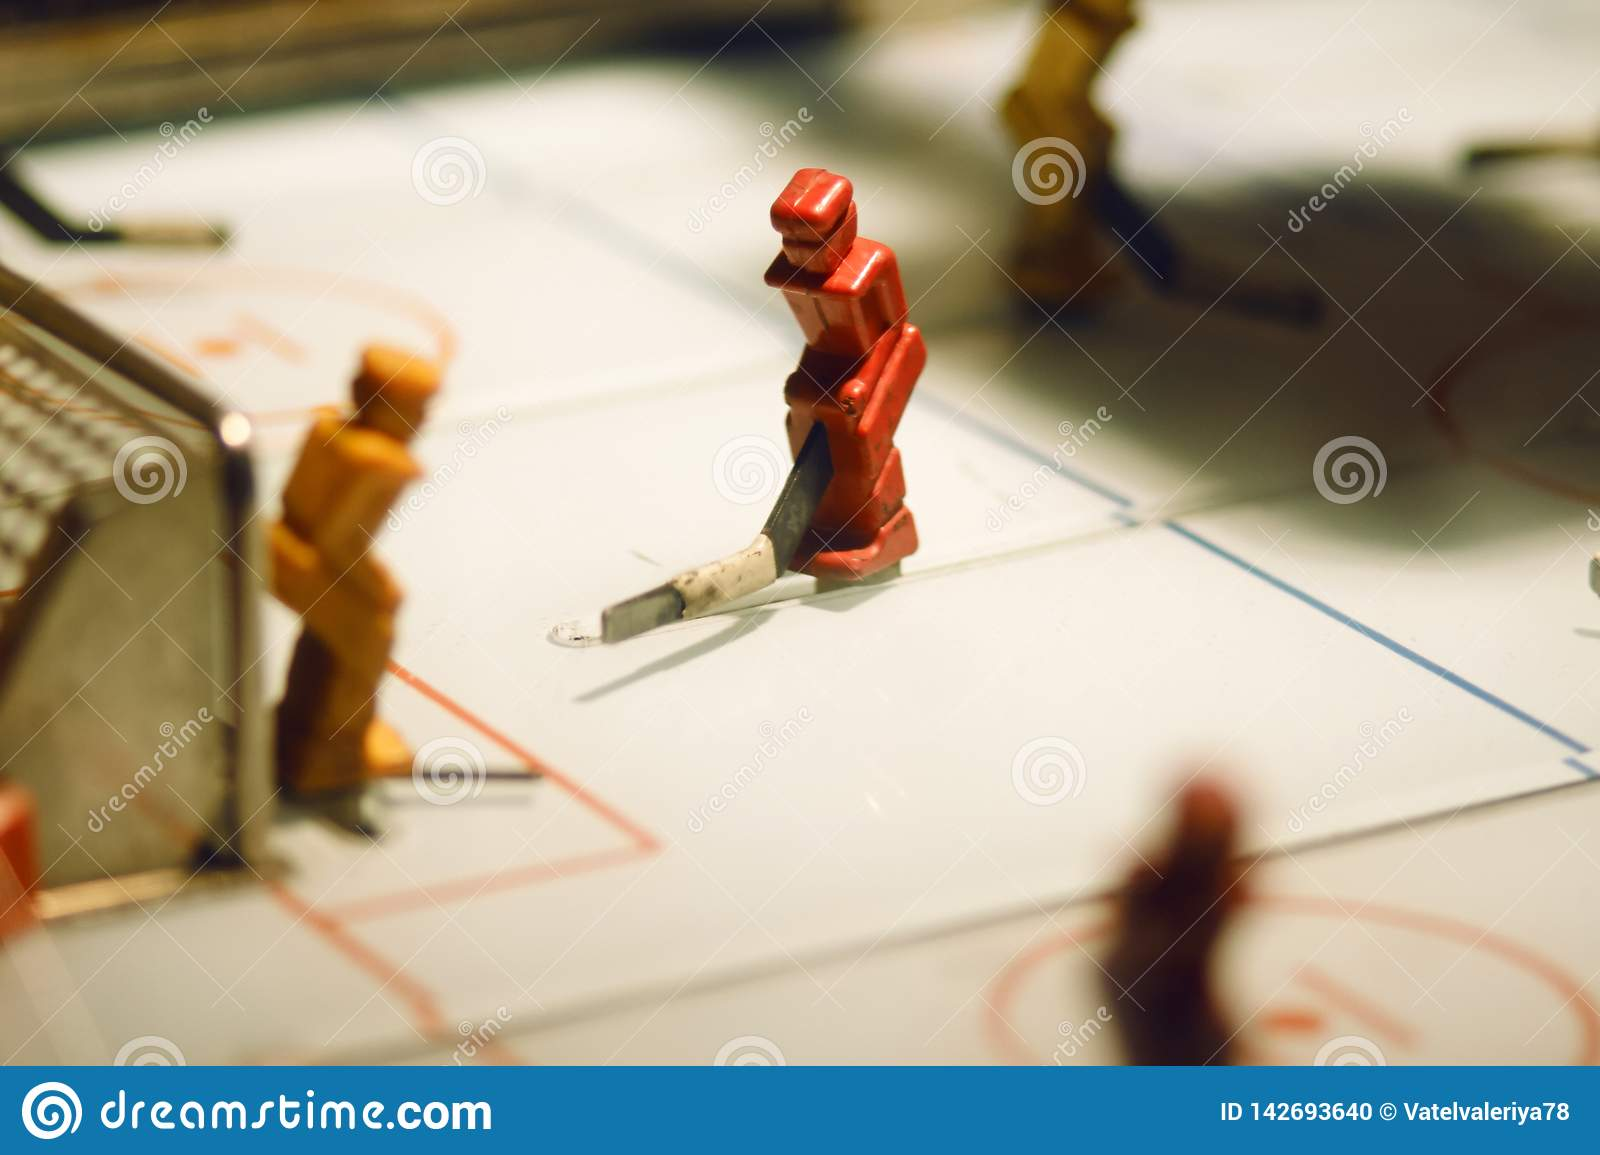 Table game with figures of hockey players